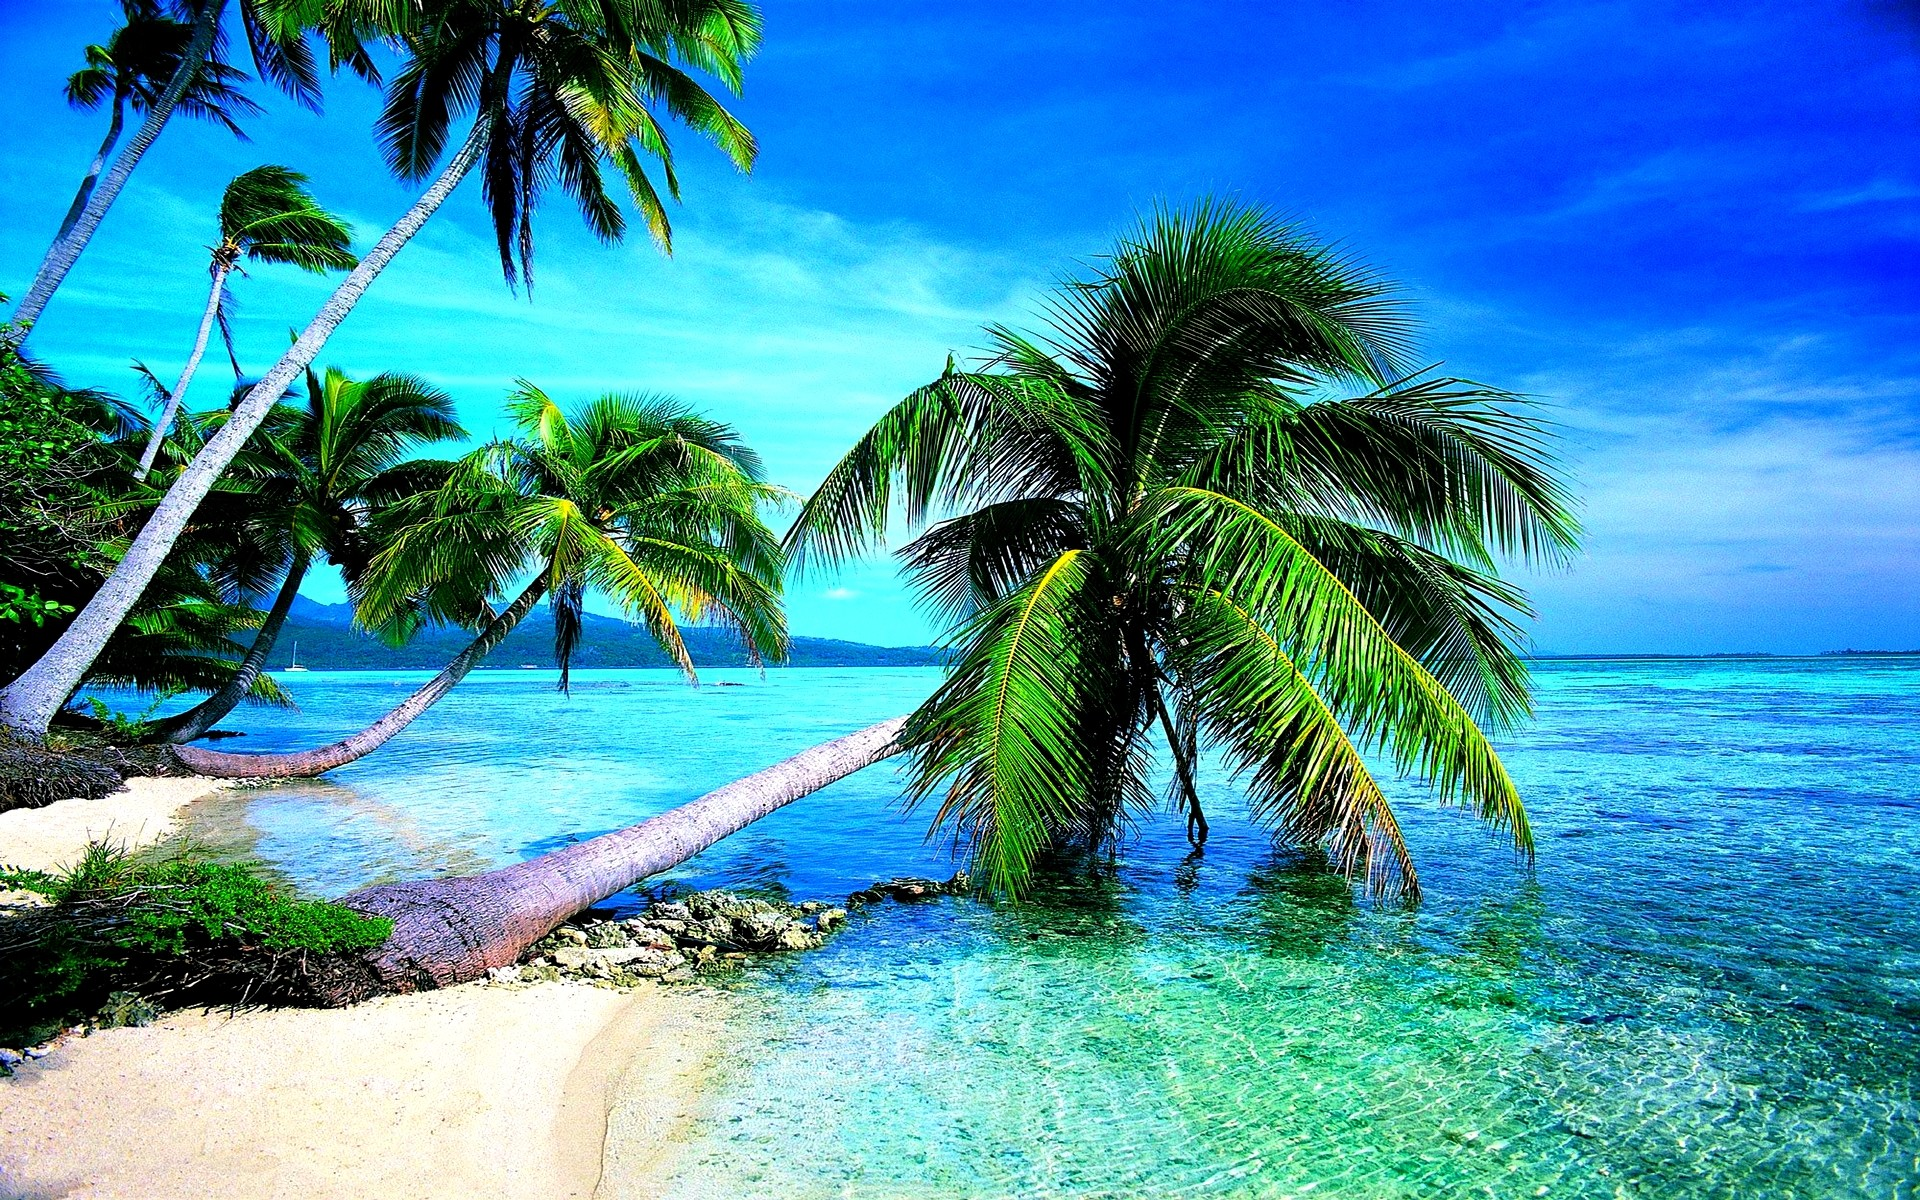 tropical beach screensavers and wallpaper (67+ images)